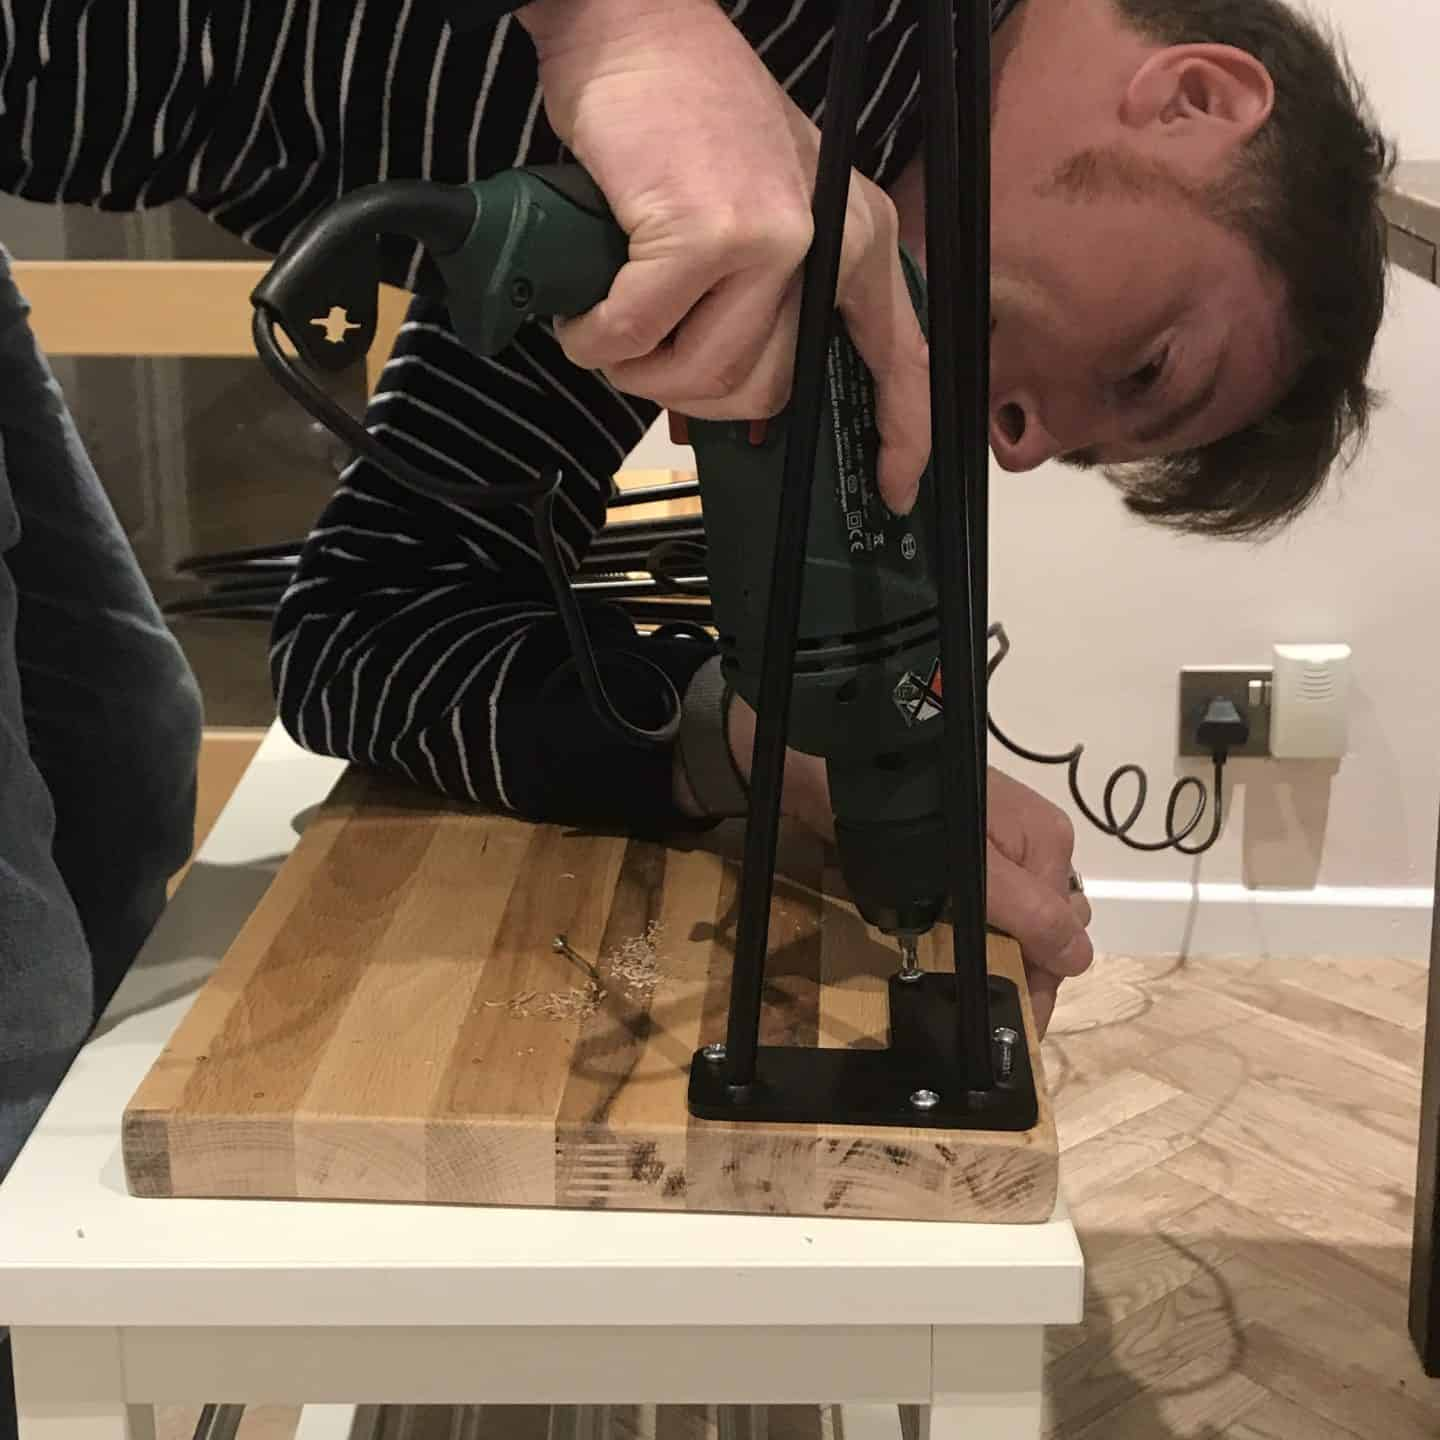 Drilling in the screws to a stool